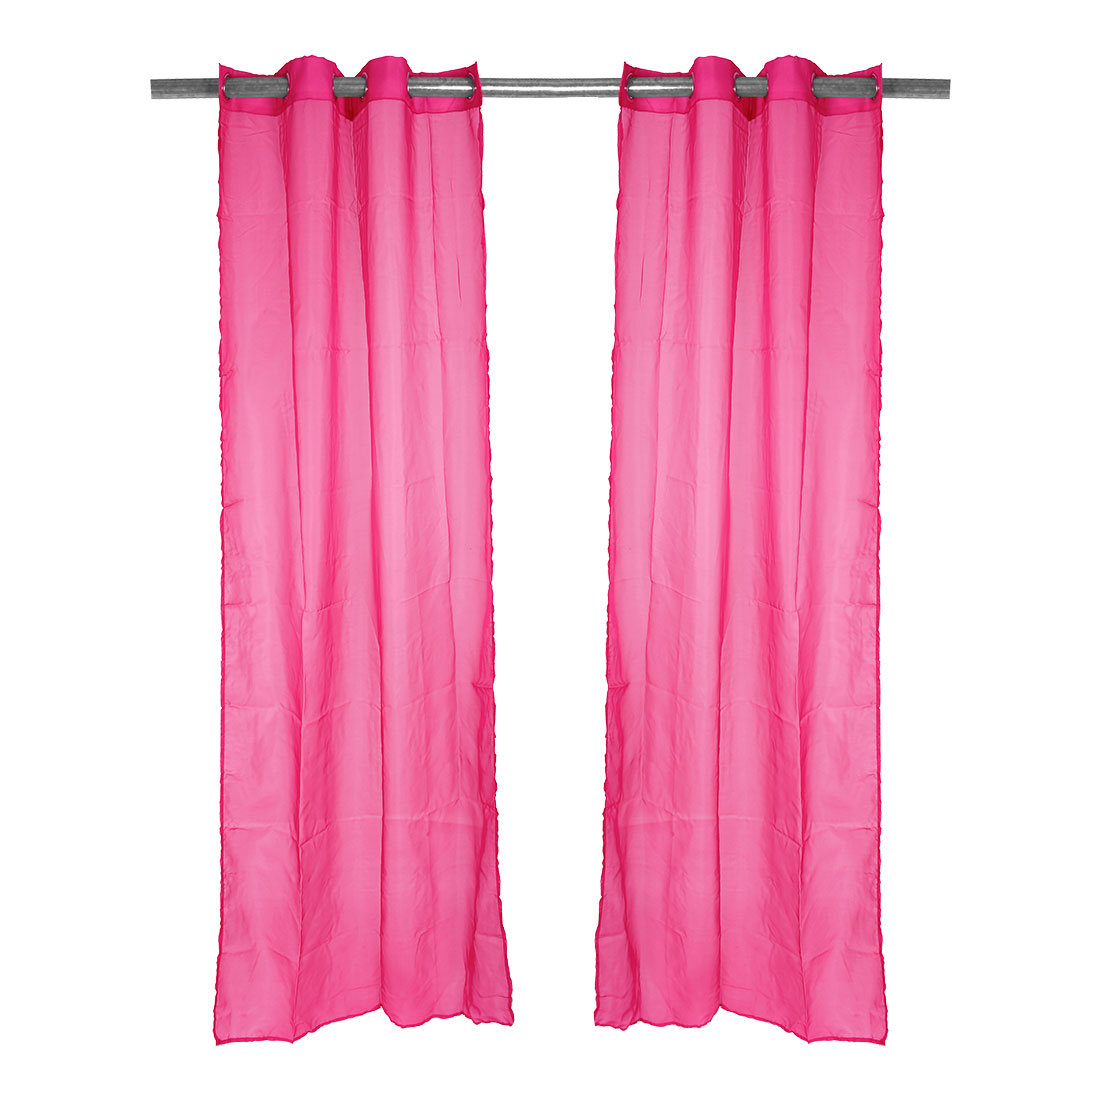 Home Decor Tulle Voile Window Drape Curtain Panel Divider Sheer Valances Fuchsia